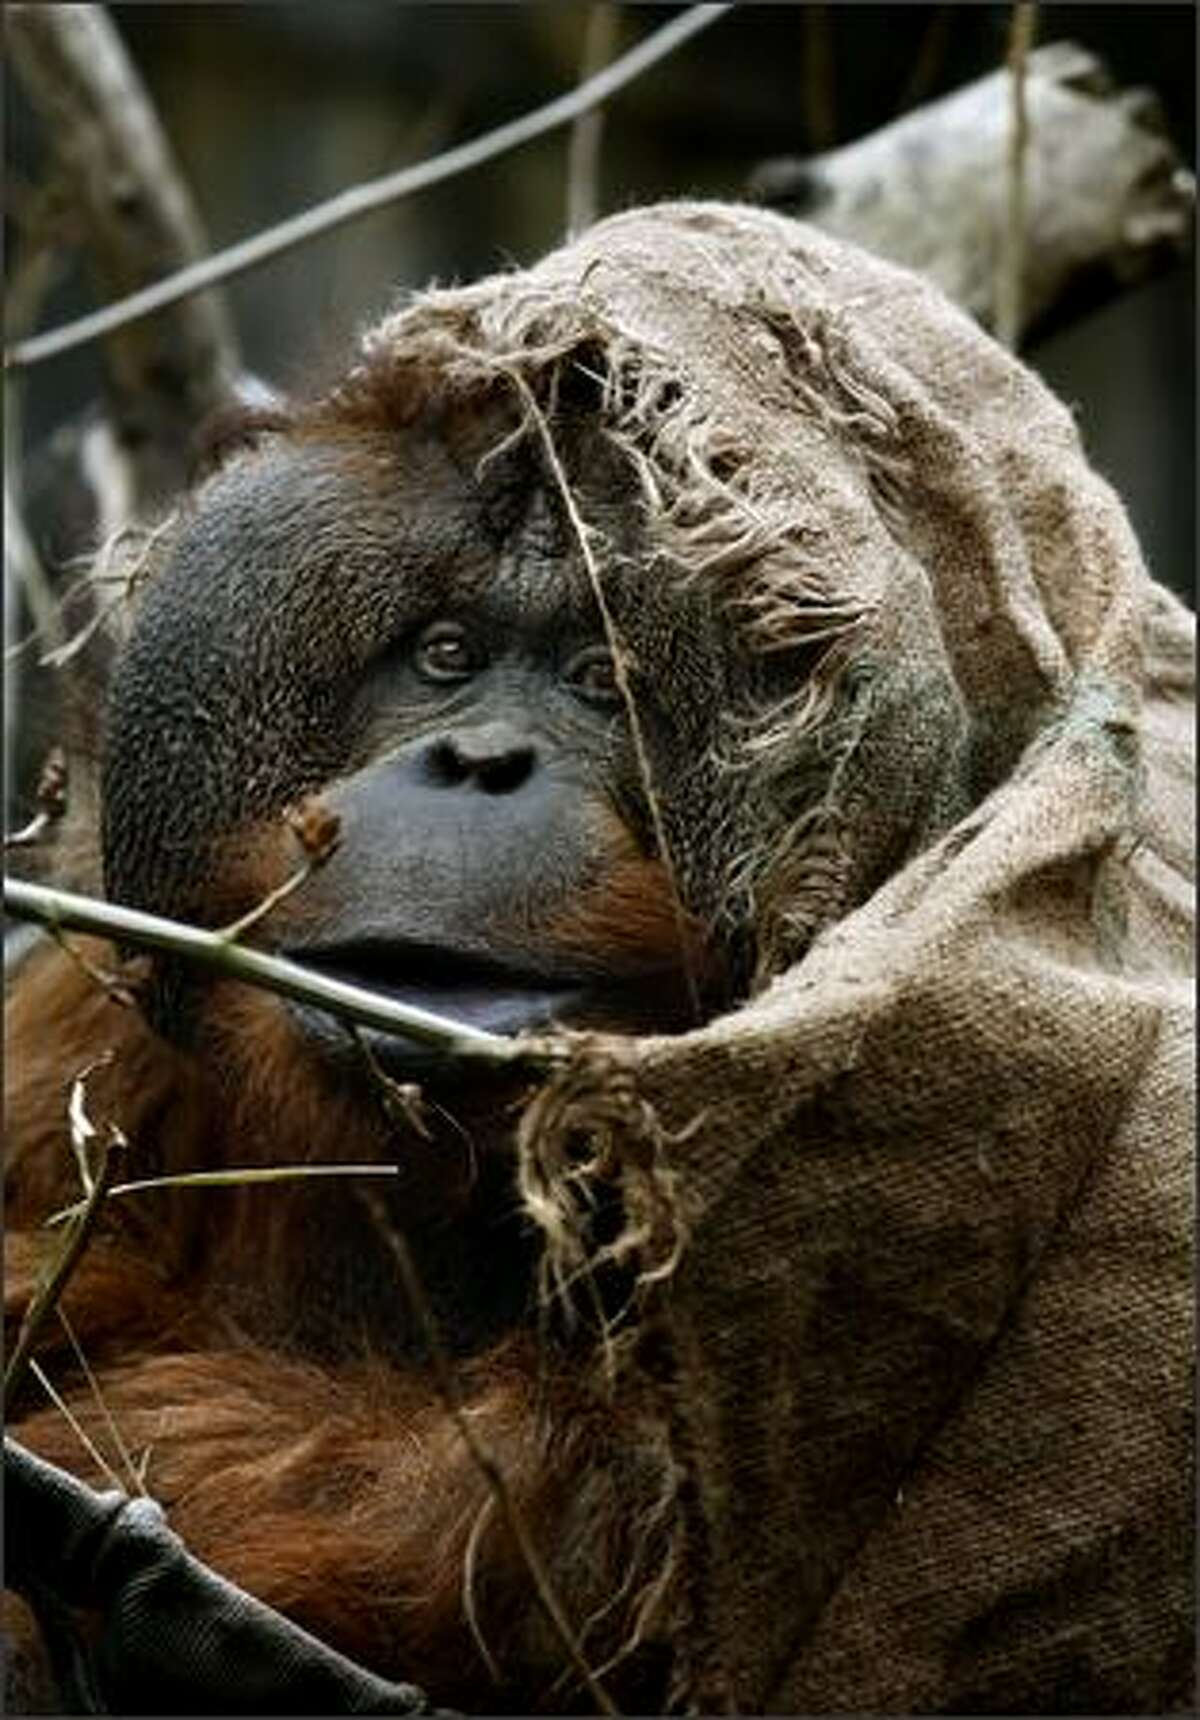 Towan, an orangutan, uses a burlap sack for privacy and warmth while hanging out in a tree at the Woodland Park Zoo in Seattle. He, along with his twin sister Chinta, will celebrate their 40th birthday Saturday.